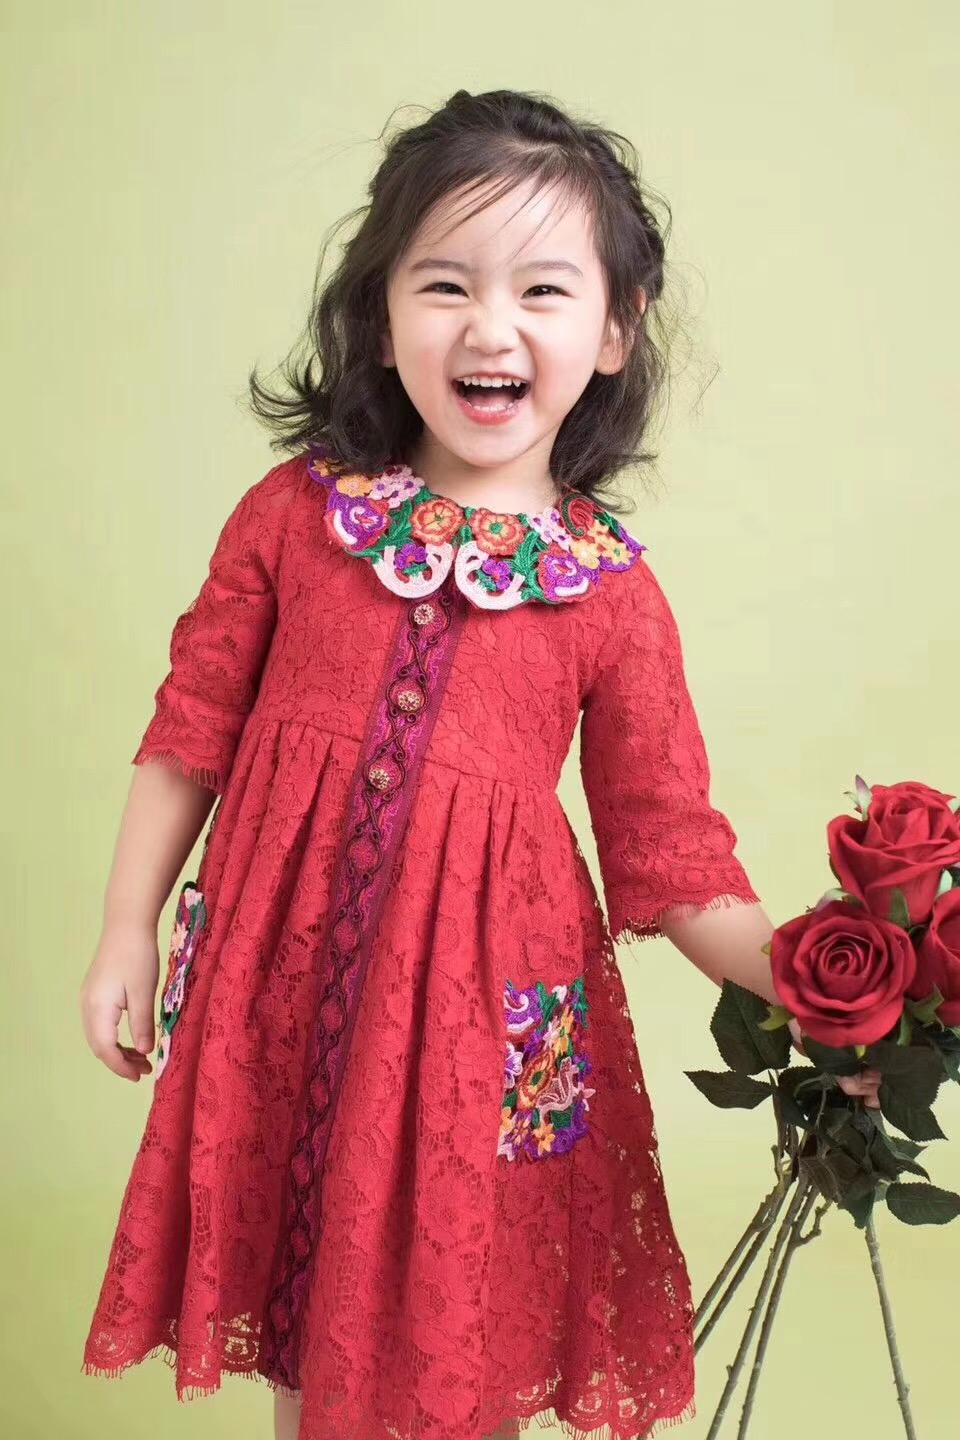 In stock baby girls dress 2018 spring summer Flower Embroidered Red Lace Dress high quality girls dresses for party and wedding summer dresses for girls party dress 100% cotton summer cool and refreshing the harness green flowered dress 1 5years old